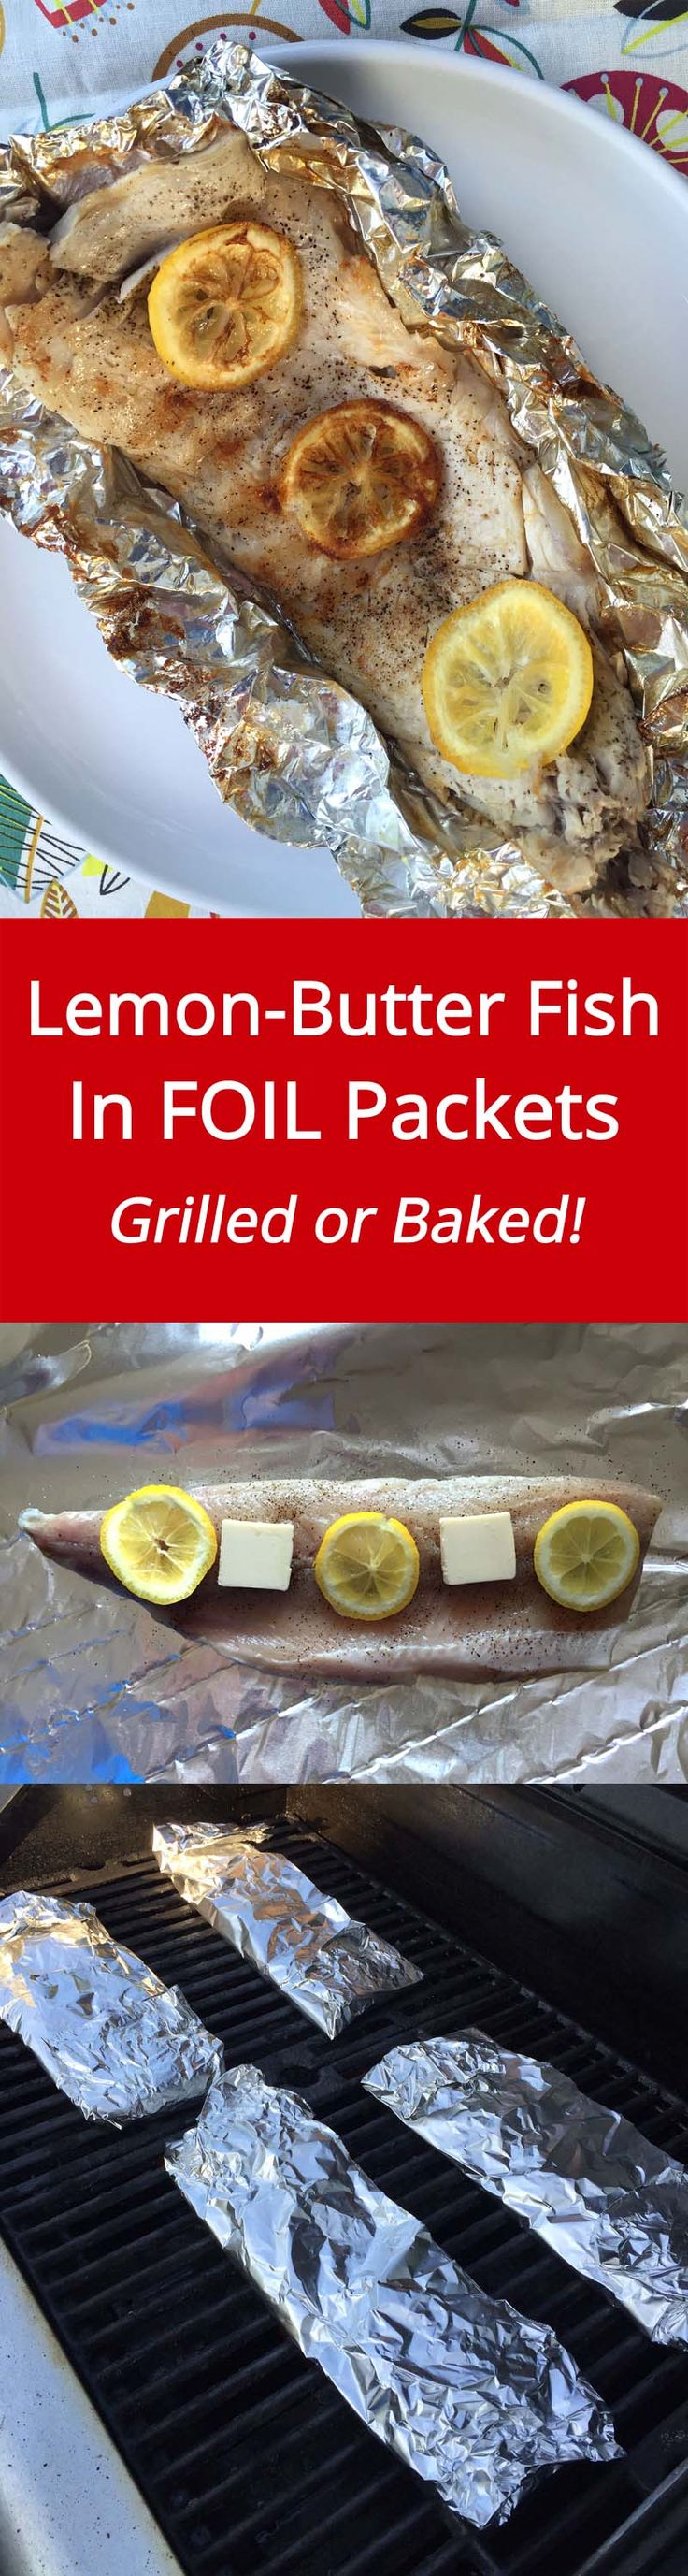 Lemon Butter Fish Recipe In Foil Packets - Grilled Or Baked! | MelanieCooks.com